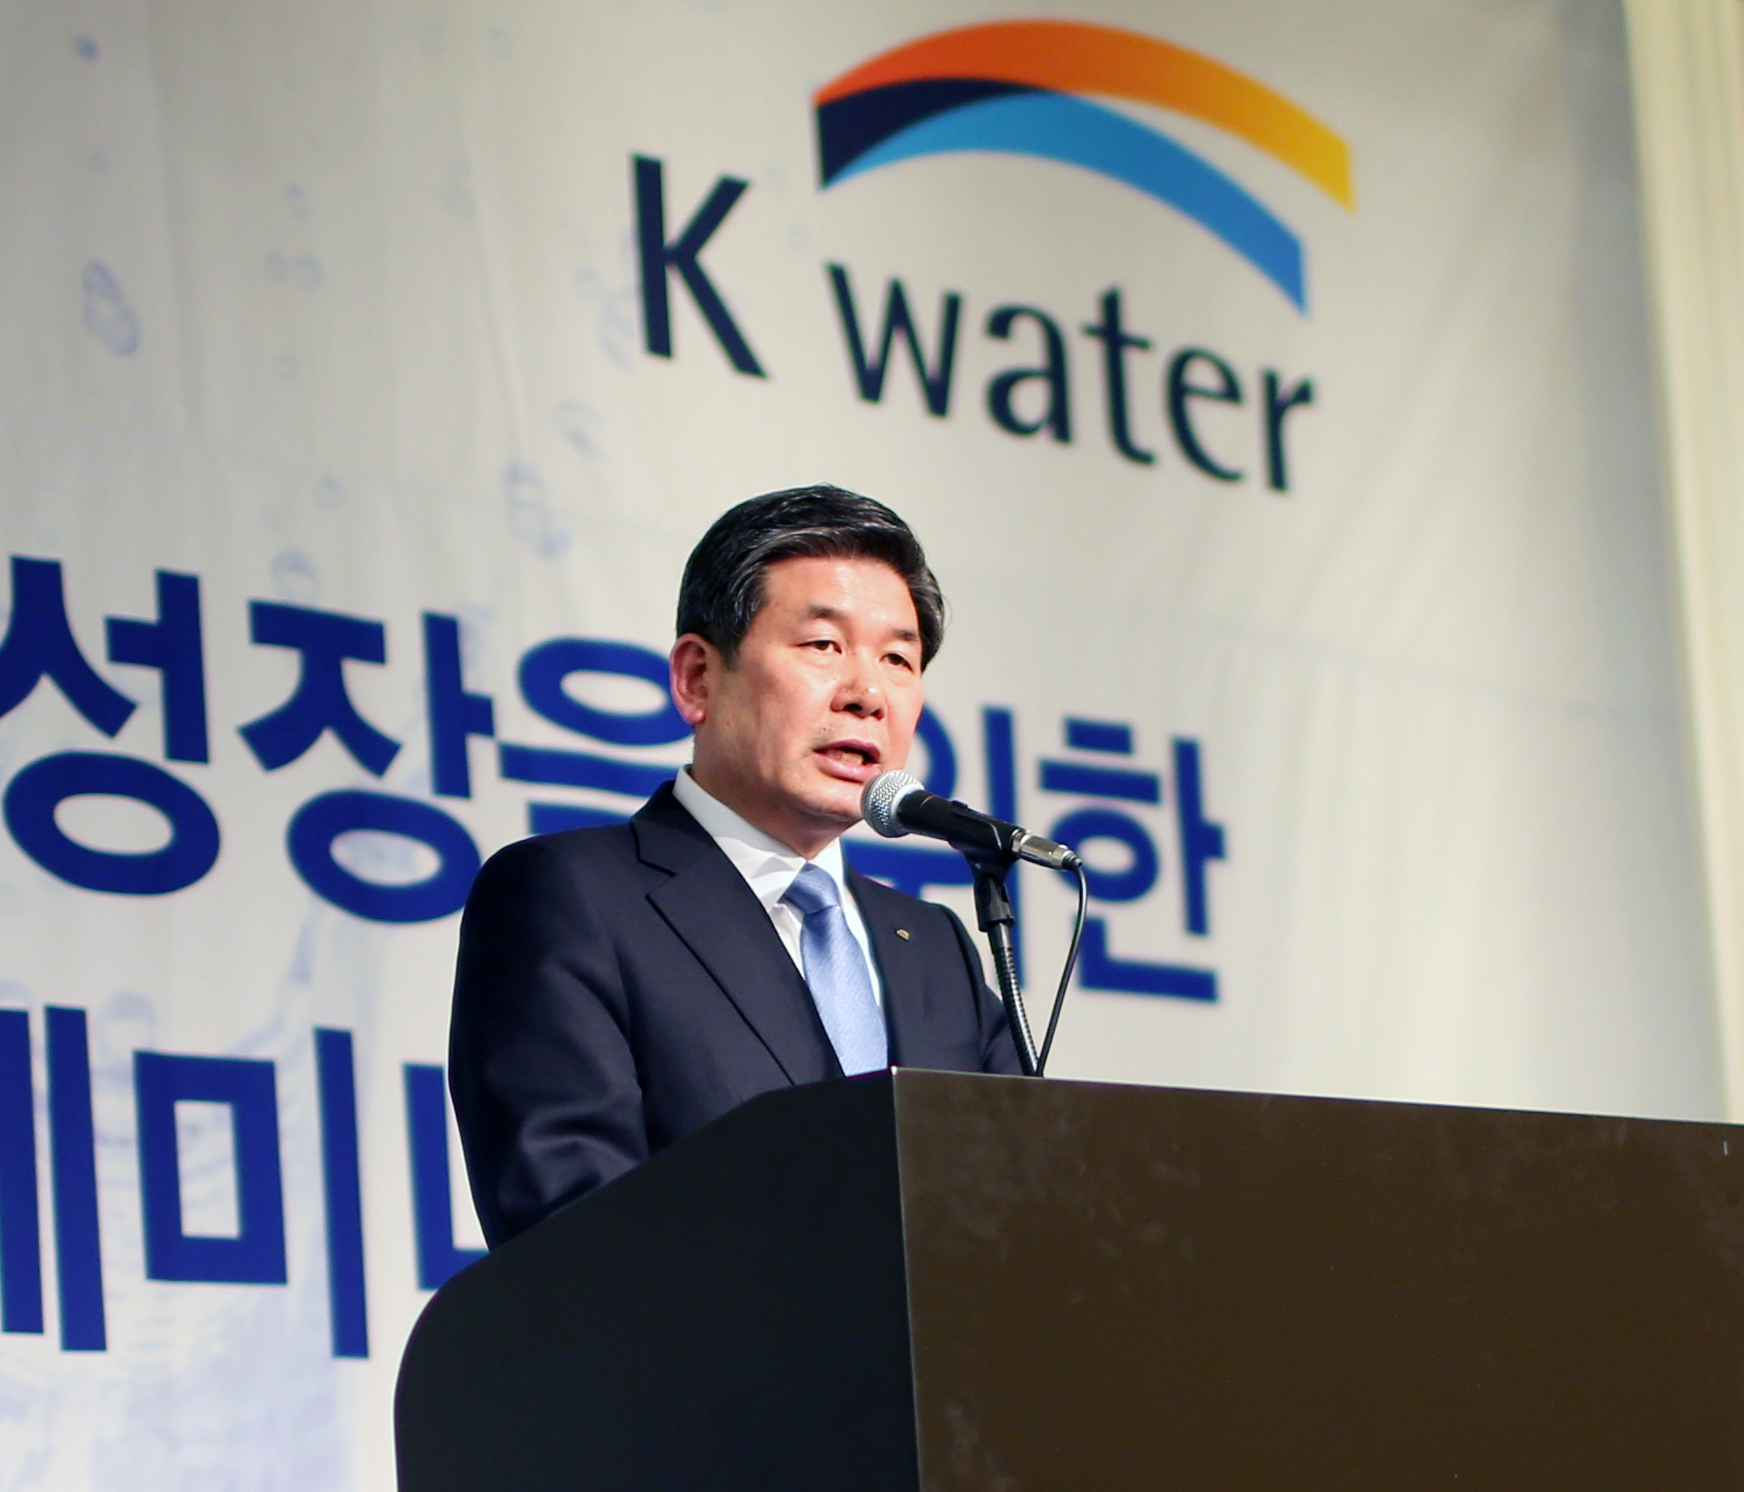 K-water CEO Choi Gye-woon gives a welcome address at KOICA's recent seminar at the K Hotel in Seoul on Feb. 12.